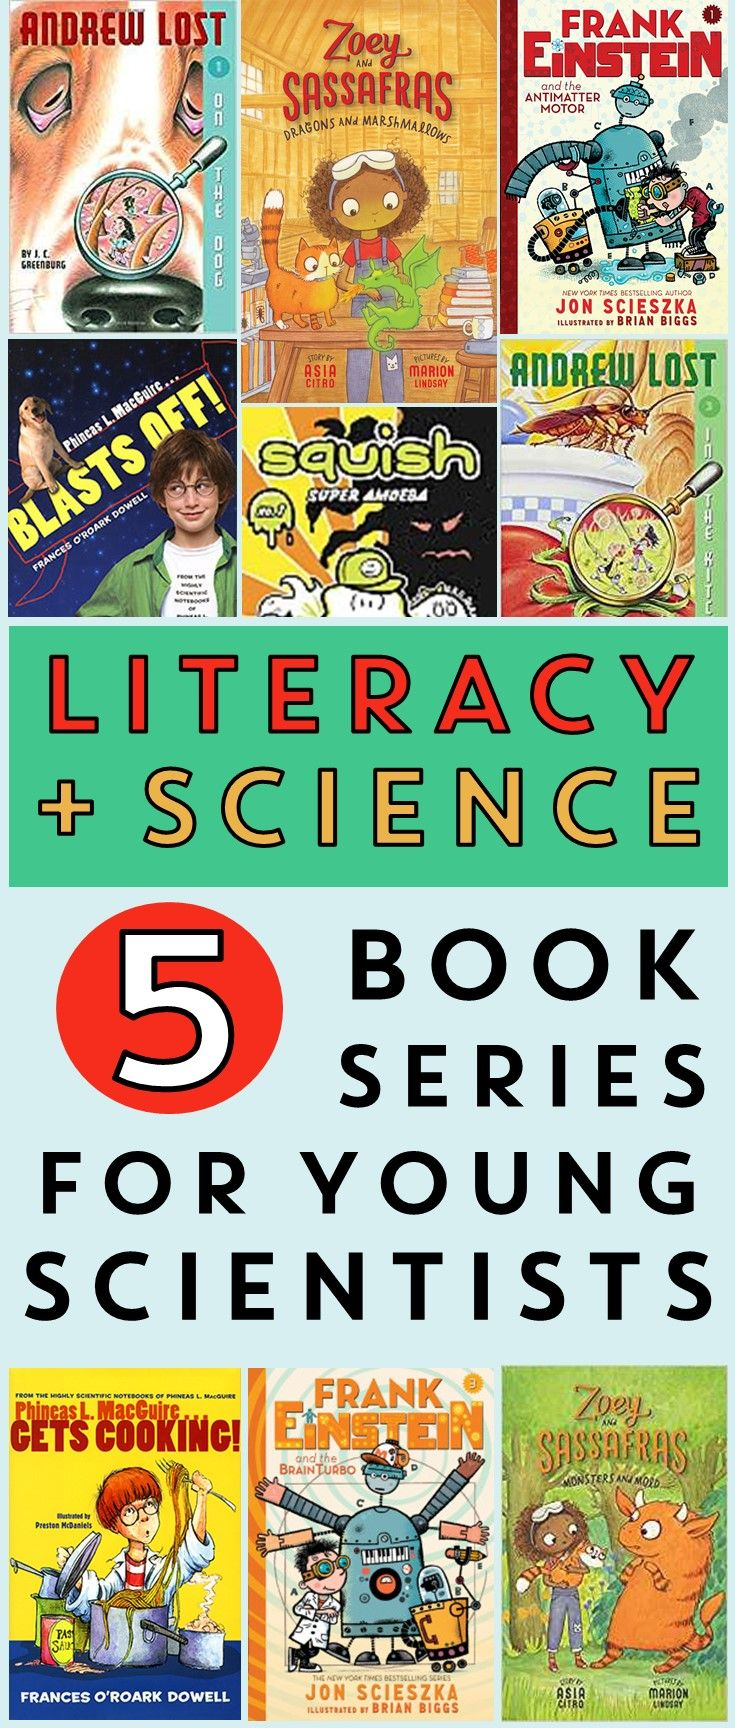 photo regarding Who Was Book Series Printable List referred to as Literacy and Science: Ebook Sequence for Younger Experts